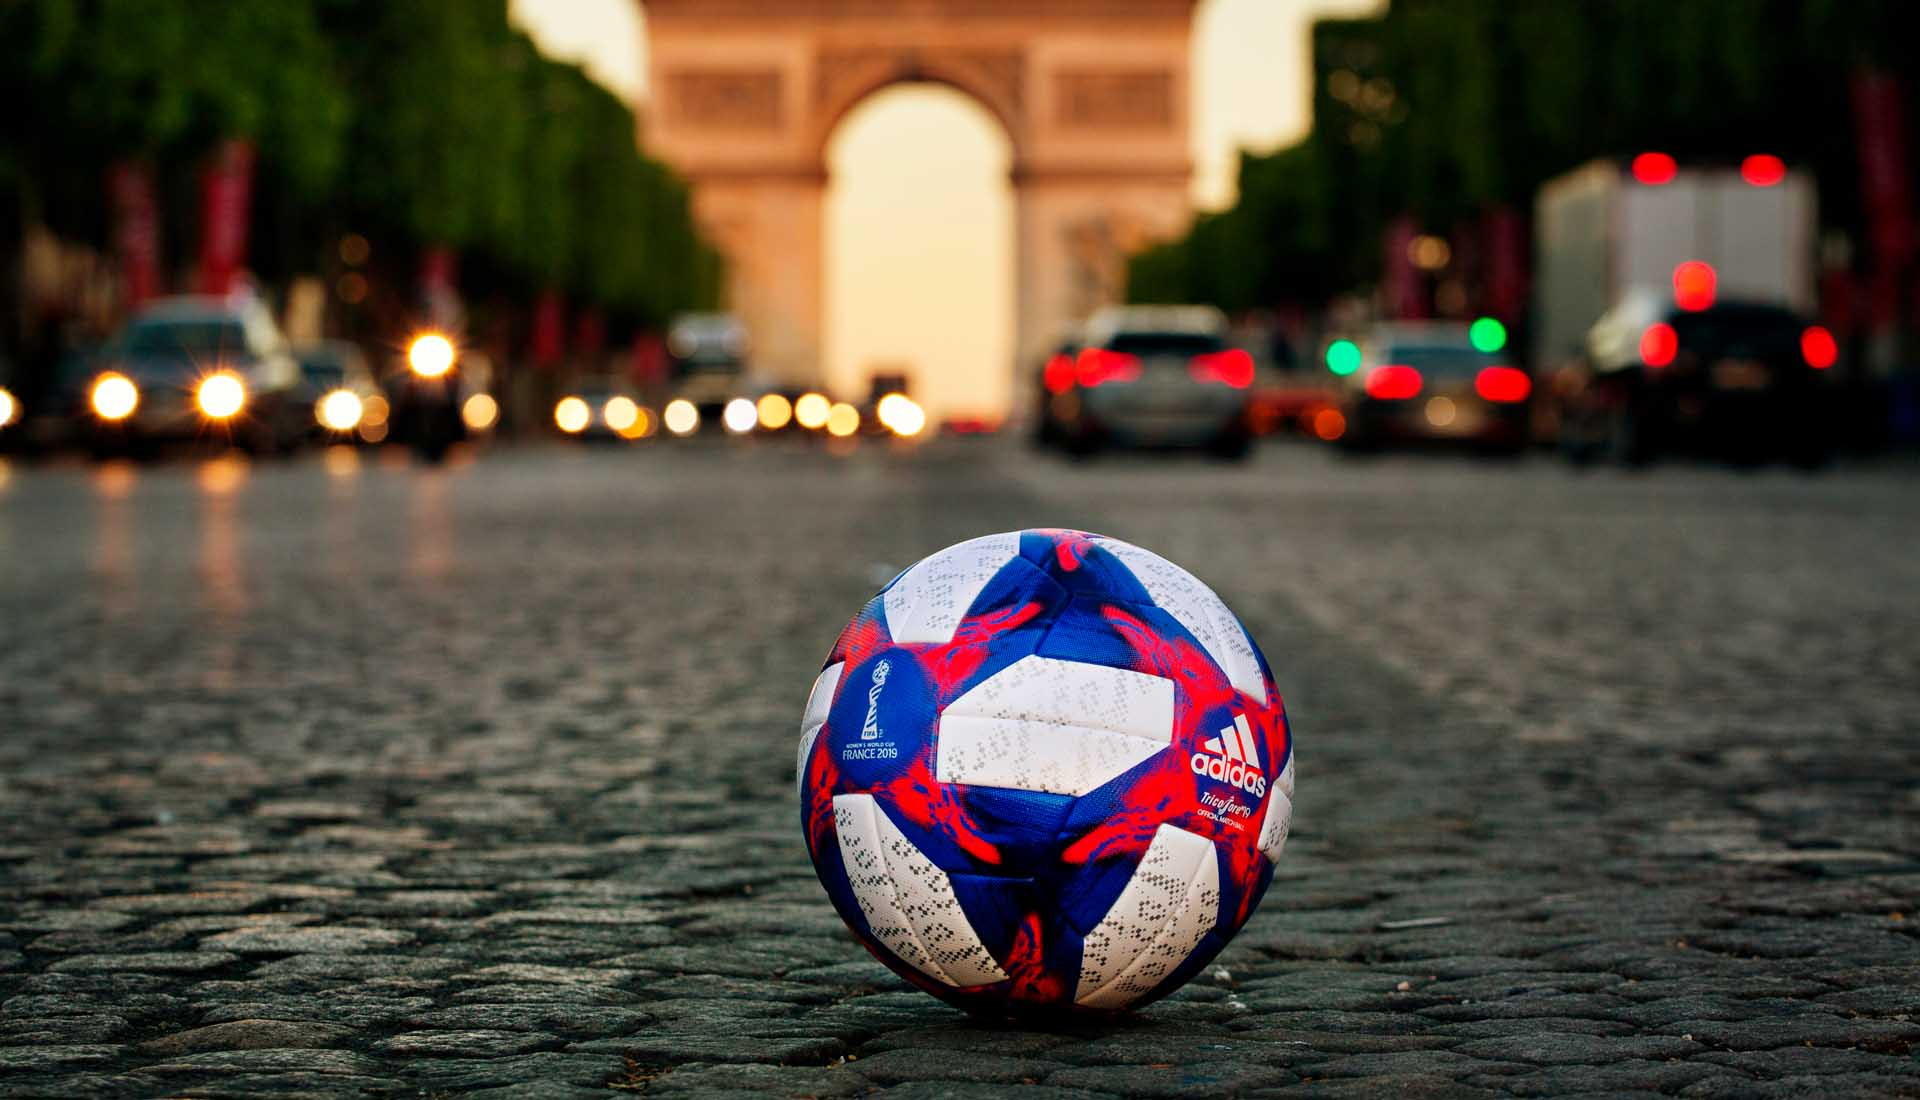 adidas The Tricolore 19 Women World Cup KO Ball